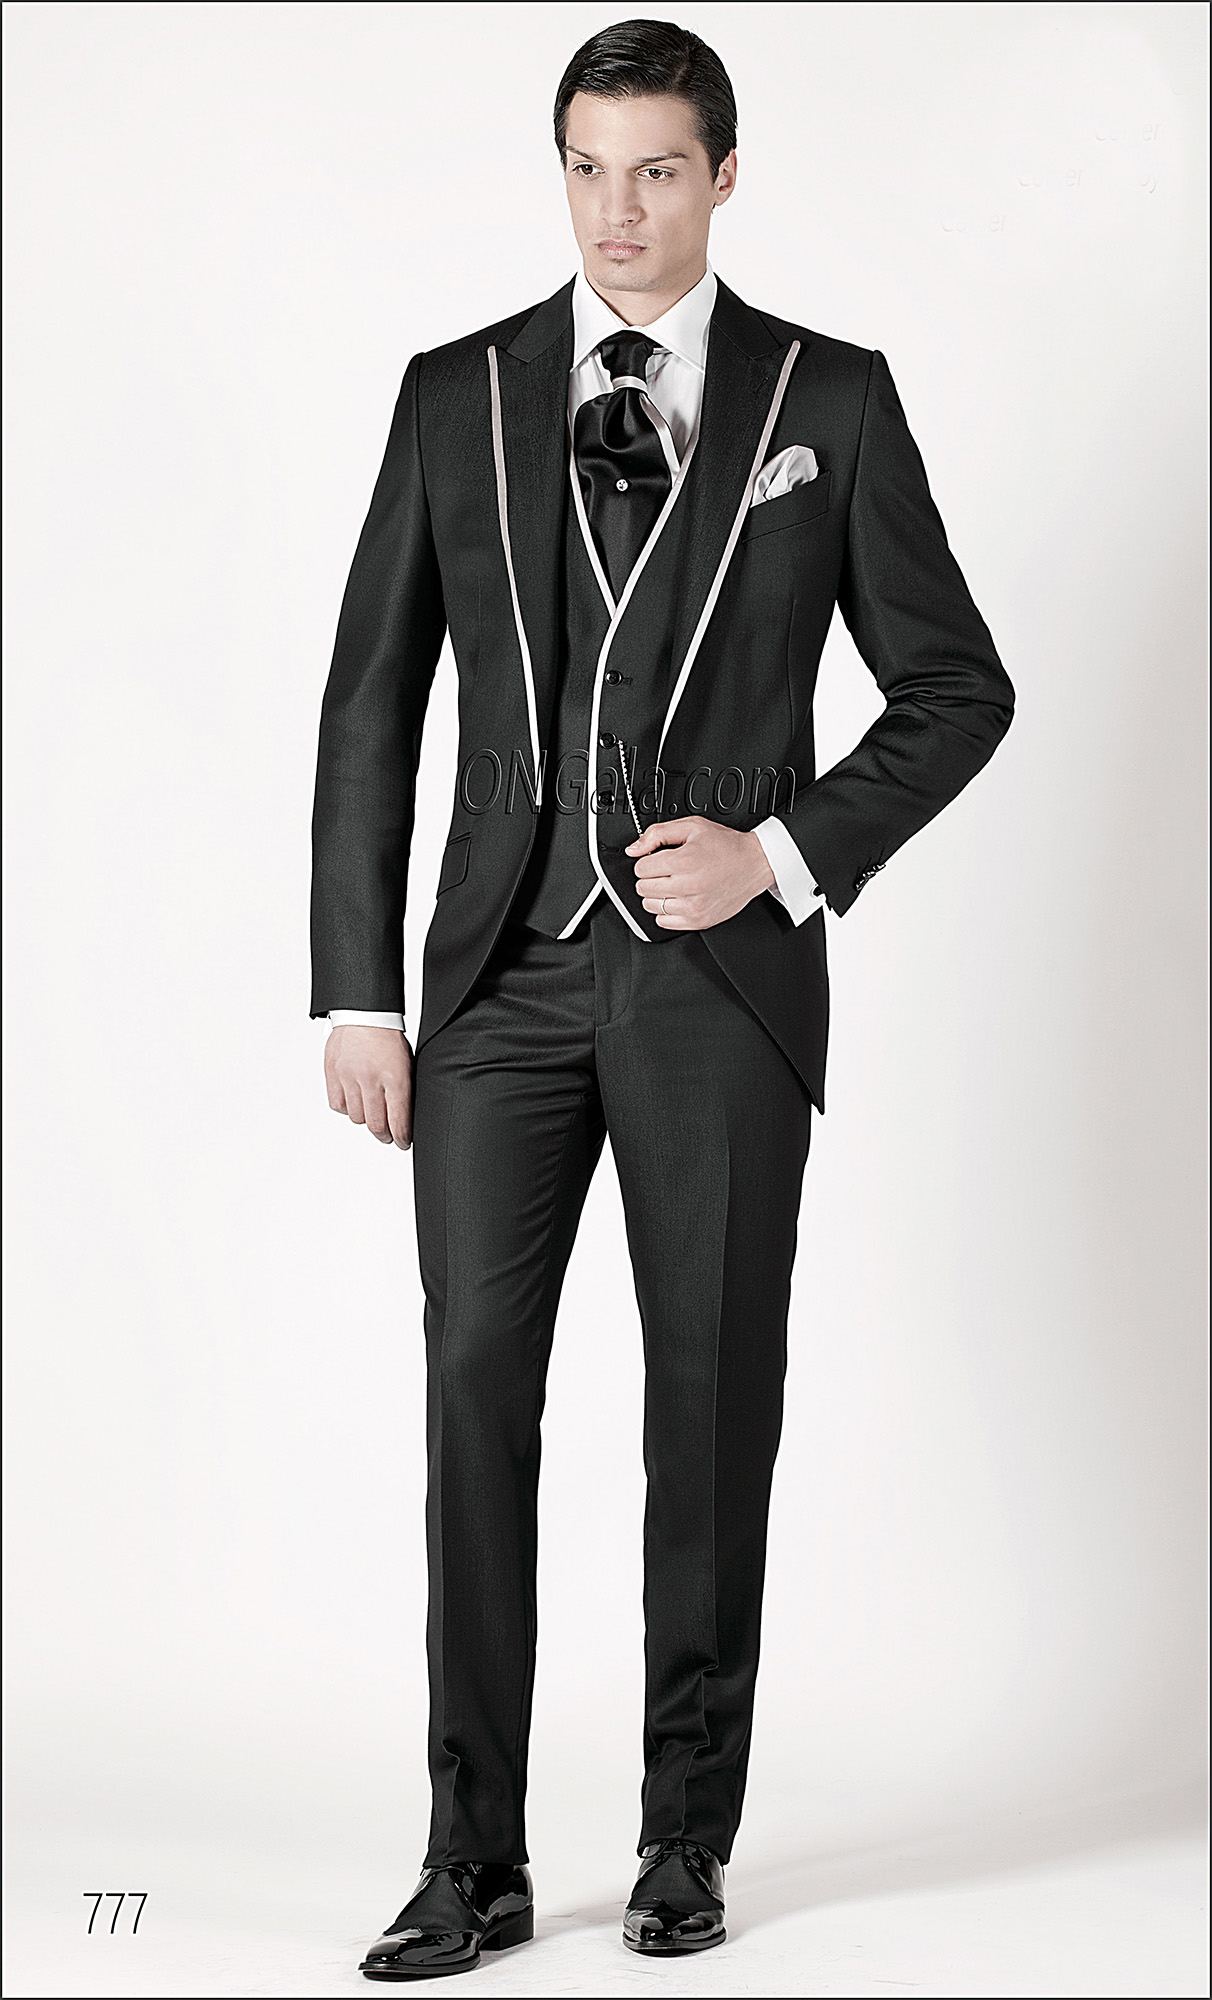 Short Tailed Italian groom suits in Black